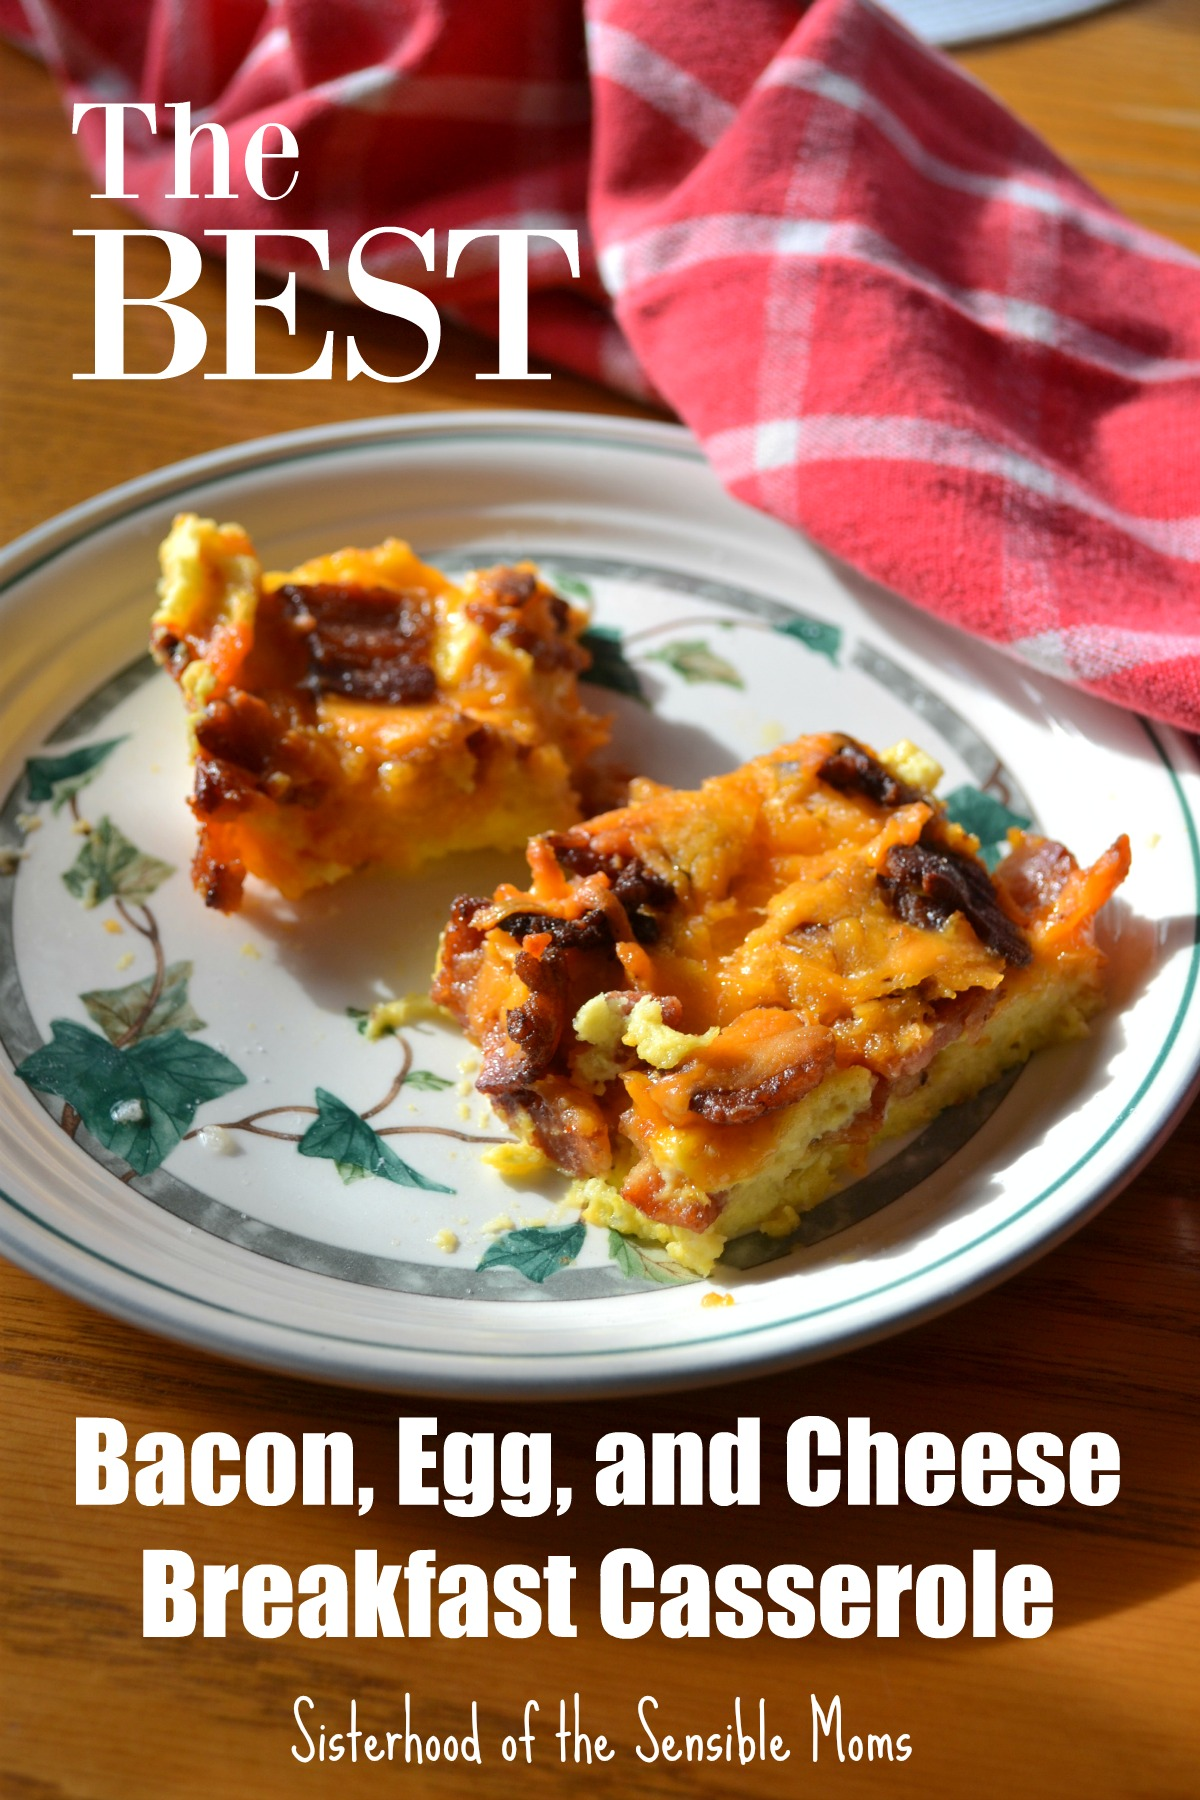 Looking for inexpensive, easy, but heartfelt Valentine's Day's ideas? This best bacon, egg, and cheese casserole is perfect | Sisterhood of the Sensible Moms